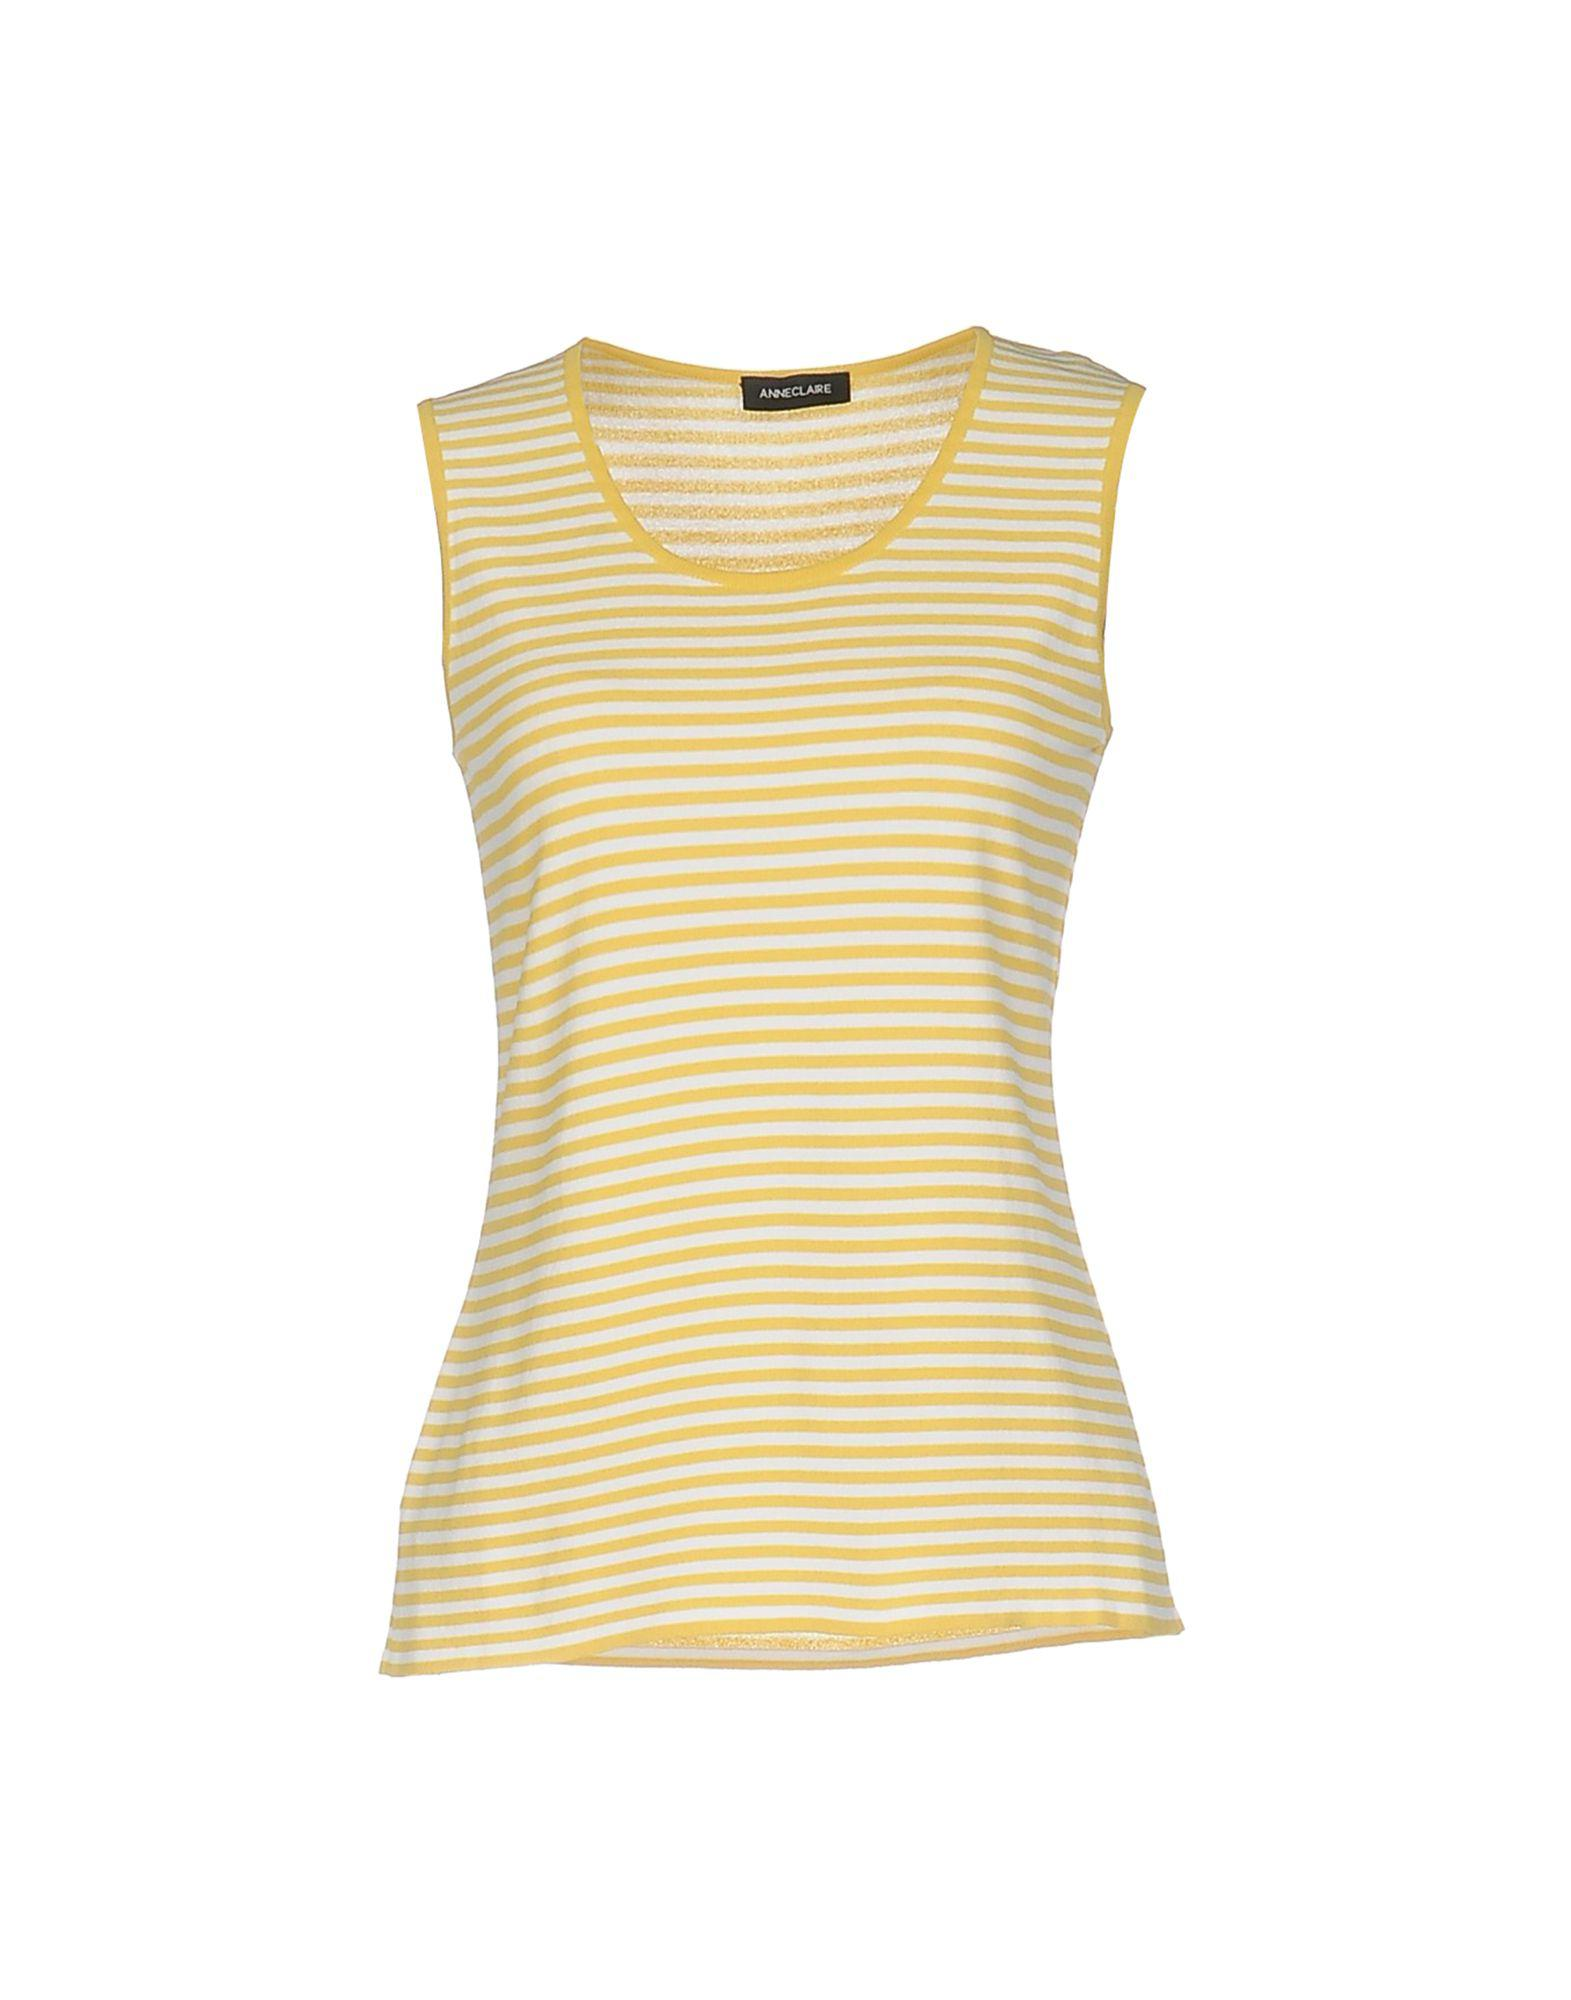 Cheap Limited Edition Cheap Pictures SHIRTS - Shirts Anneclaire Wjtk93Br